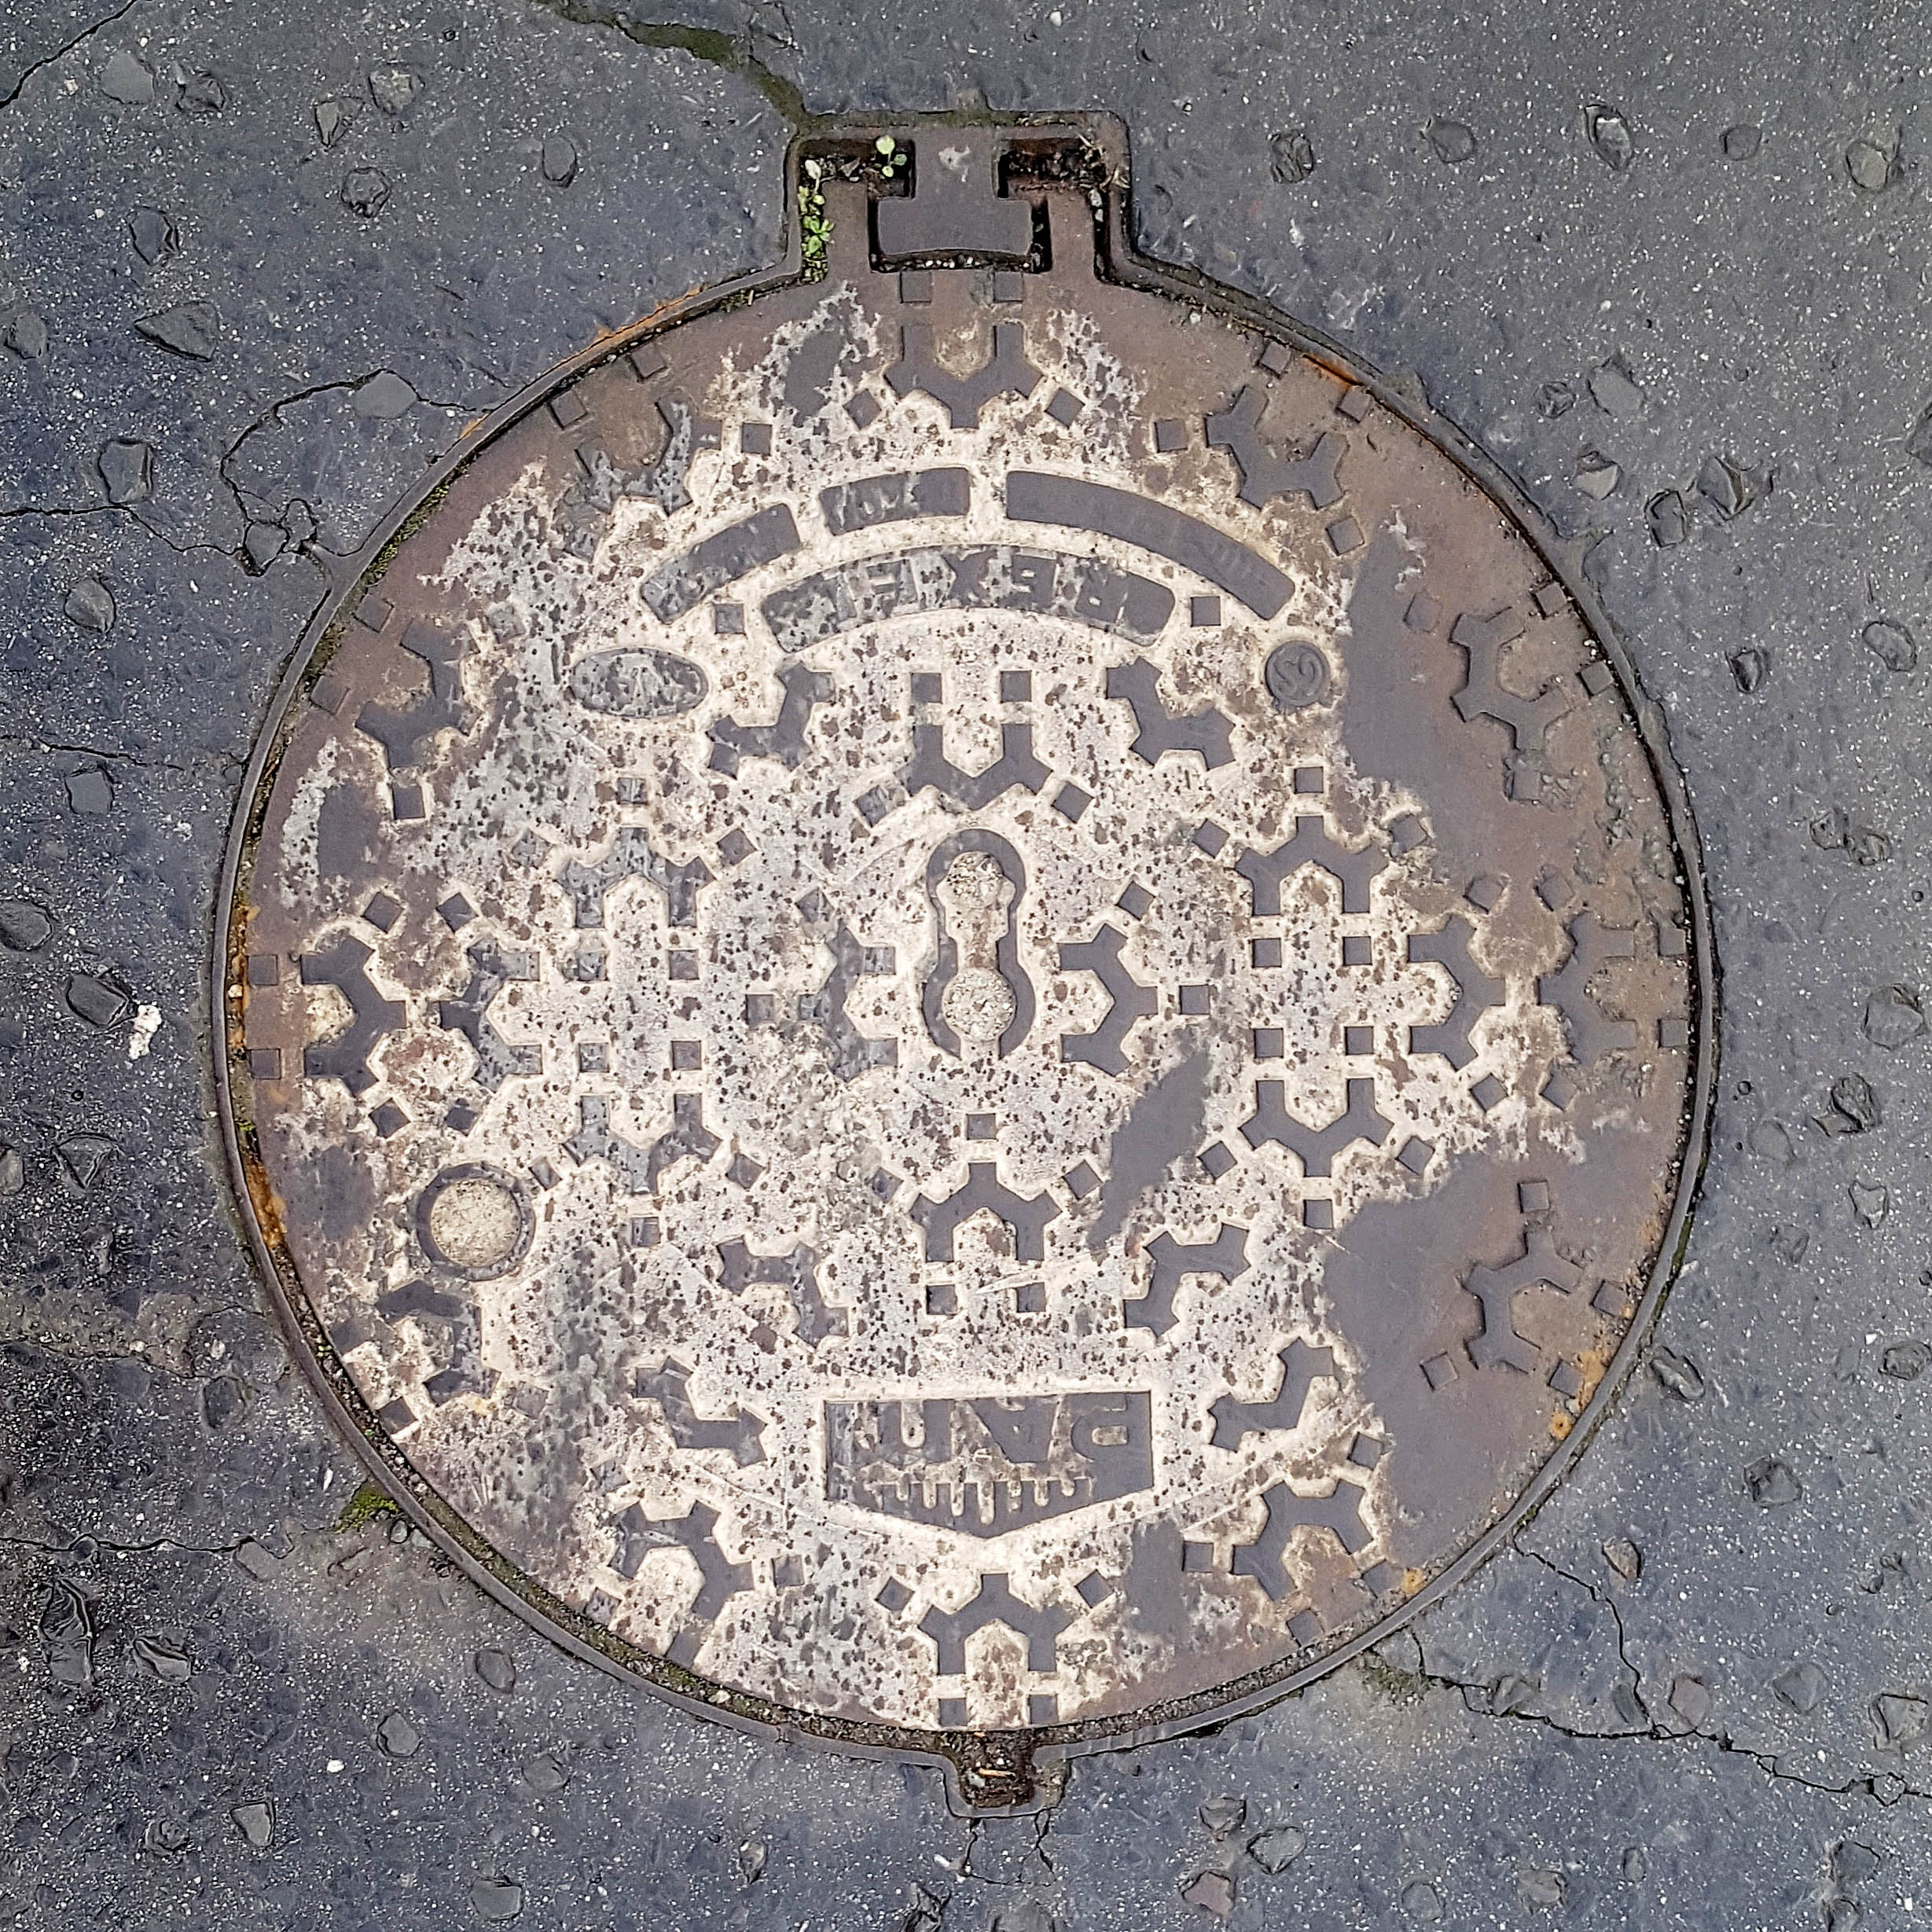 Manhole Cover, London - Cast iron with abstract symetrical pattern and integral hinge